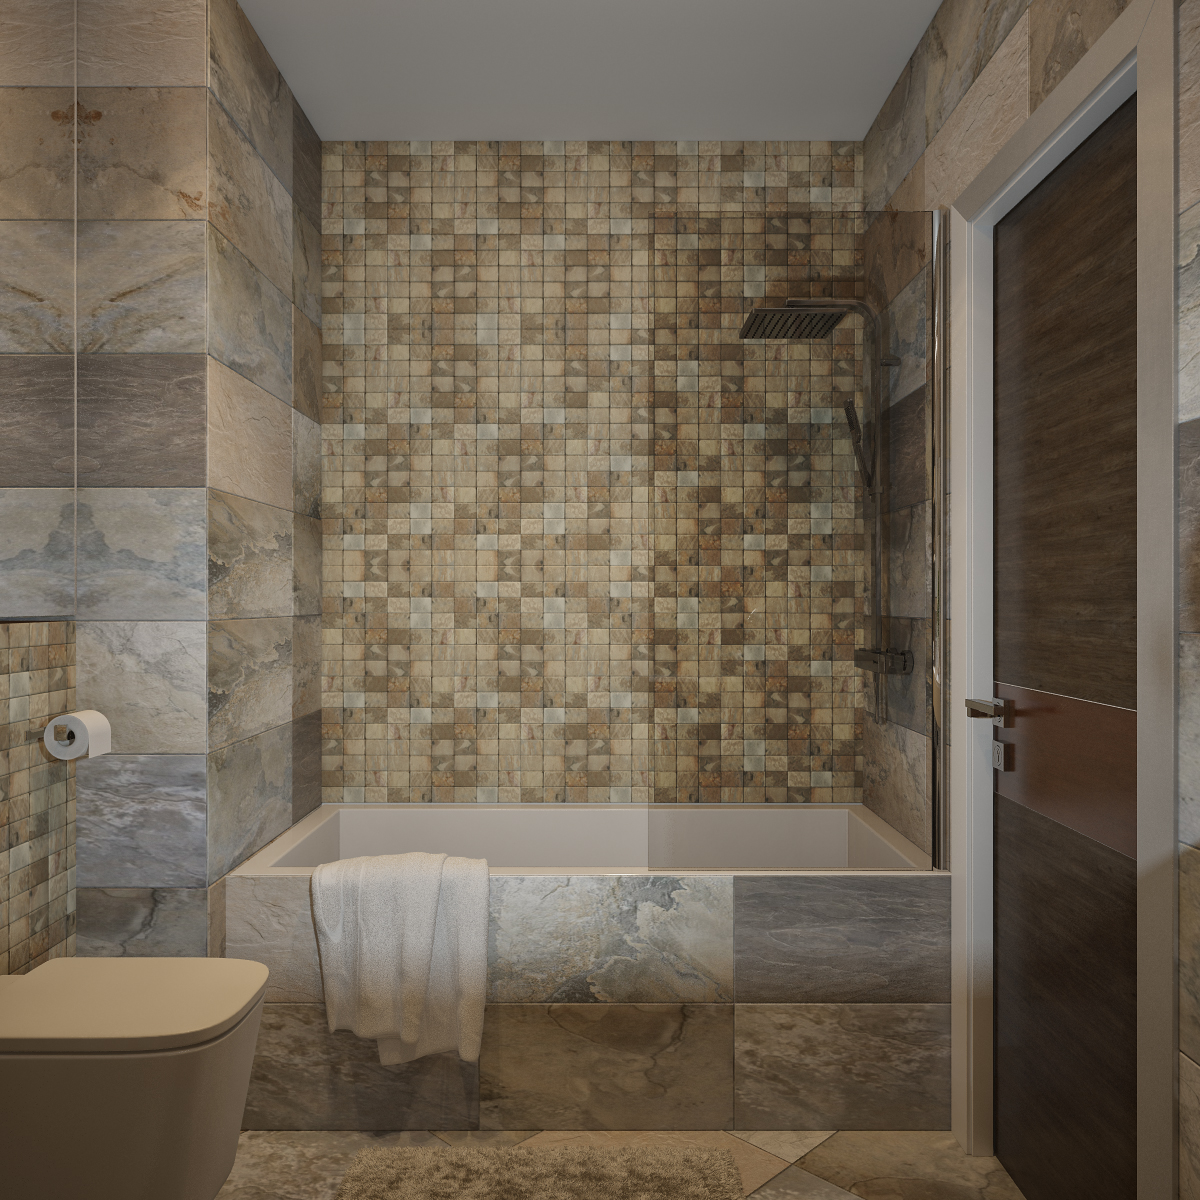 Mosaic Bathroom Tile Ideas: 30 Cool Ideas And Pictures Of Natural Stone Bathroom